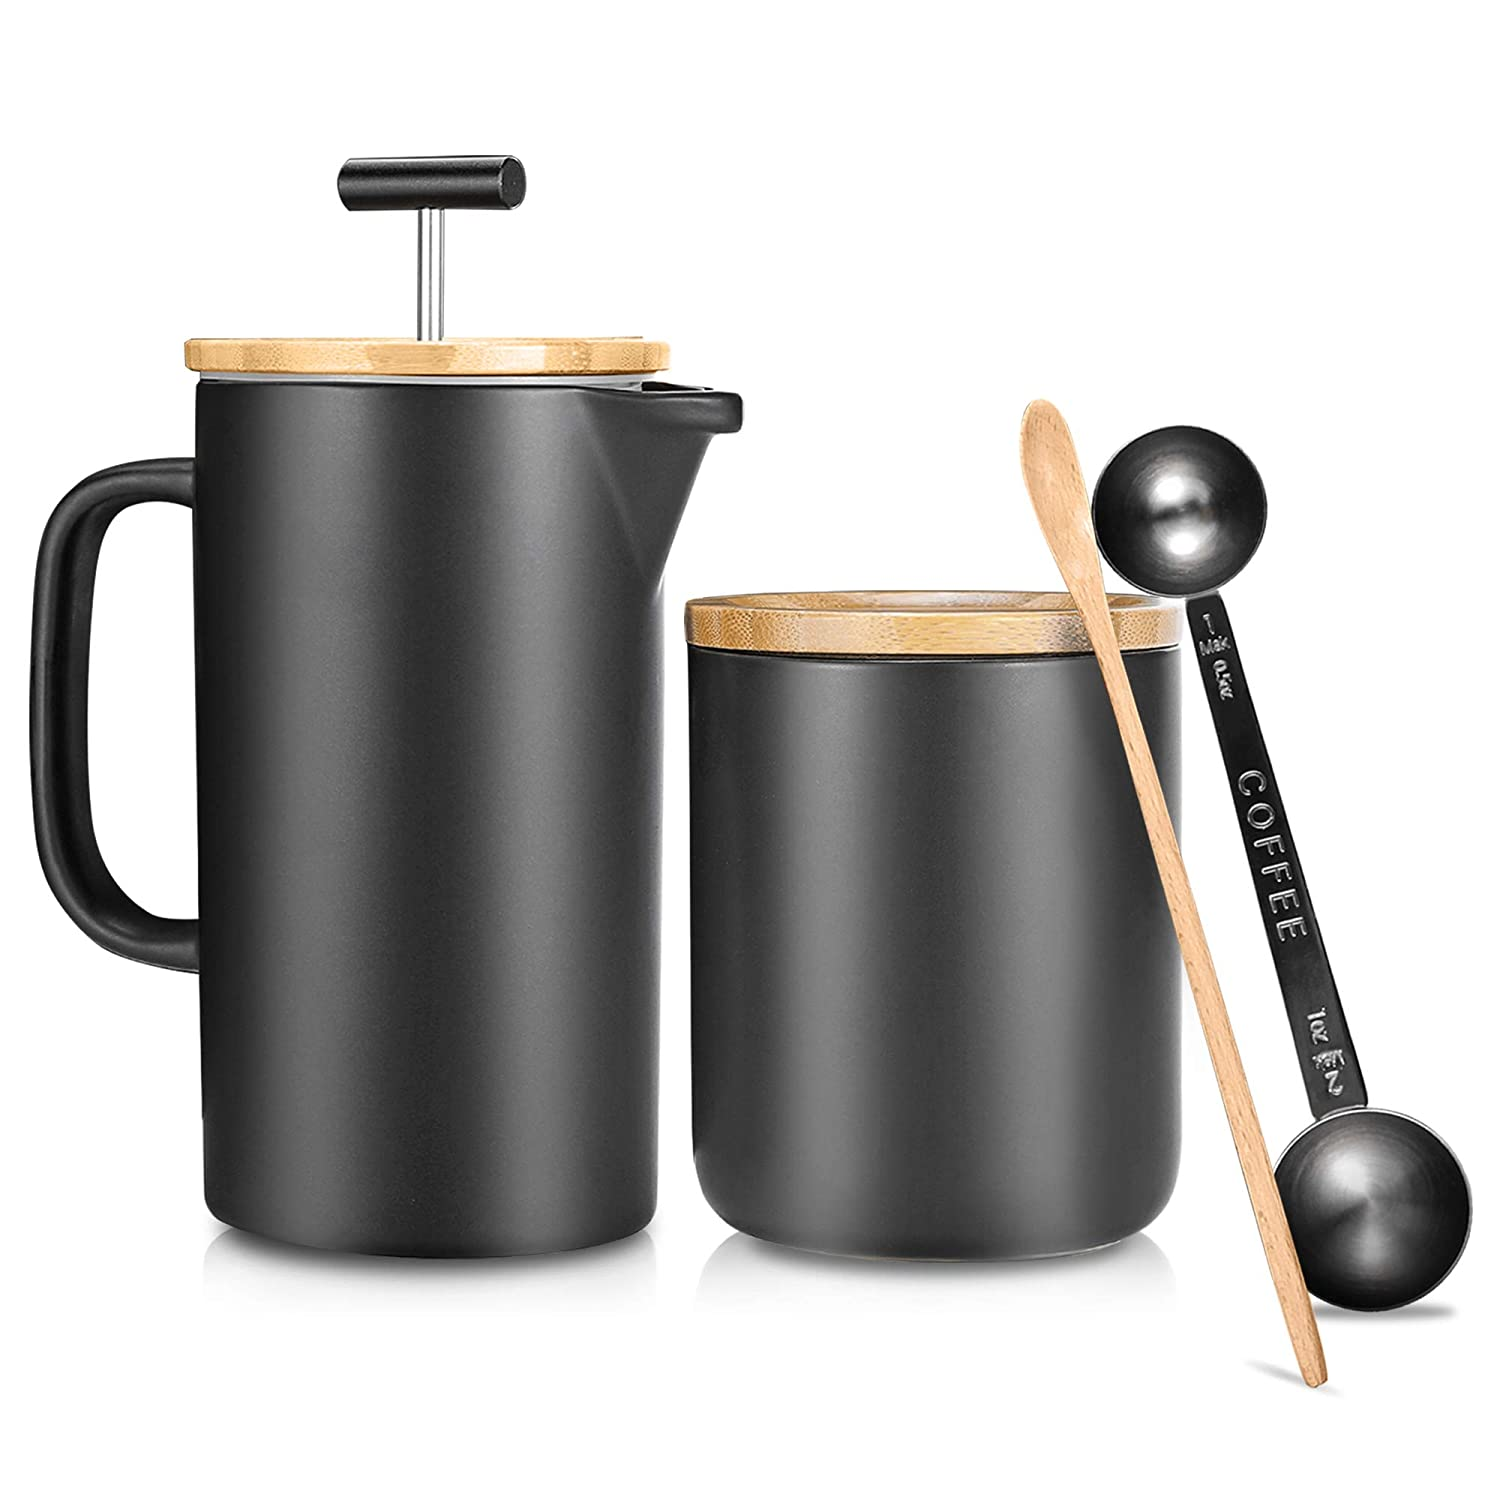 Ceramic French Press Coffee Maker Coffee Plunger Coffee Press 24 oz. with Grounds Canister Non-Porous Stoneware Complimentary Measuring Stirring Spoons